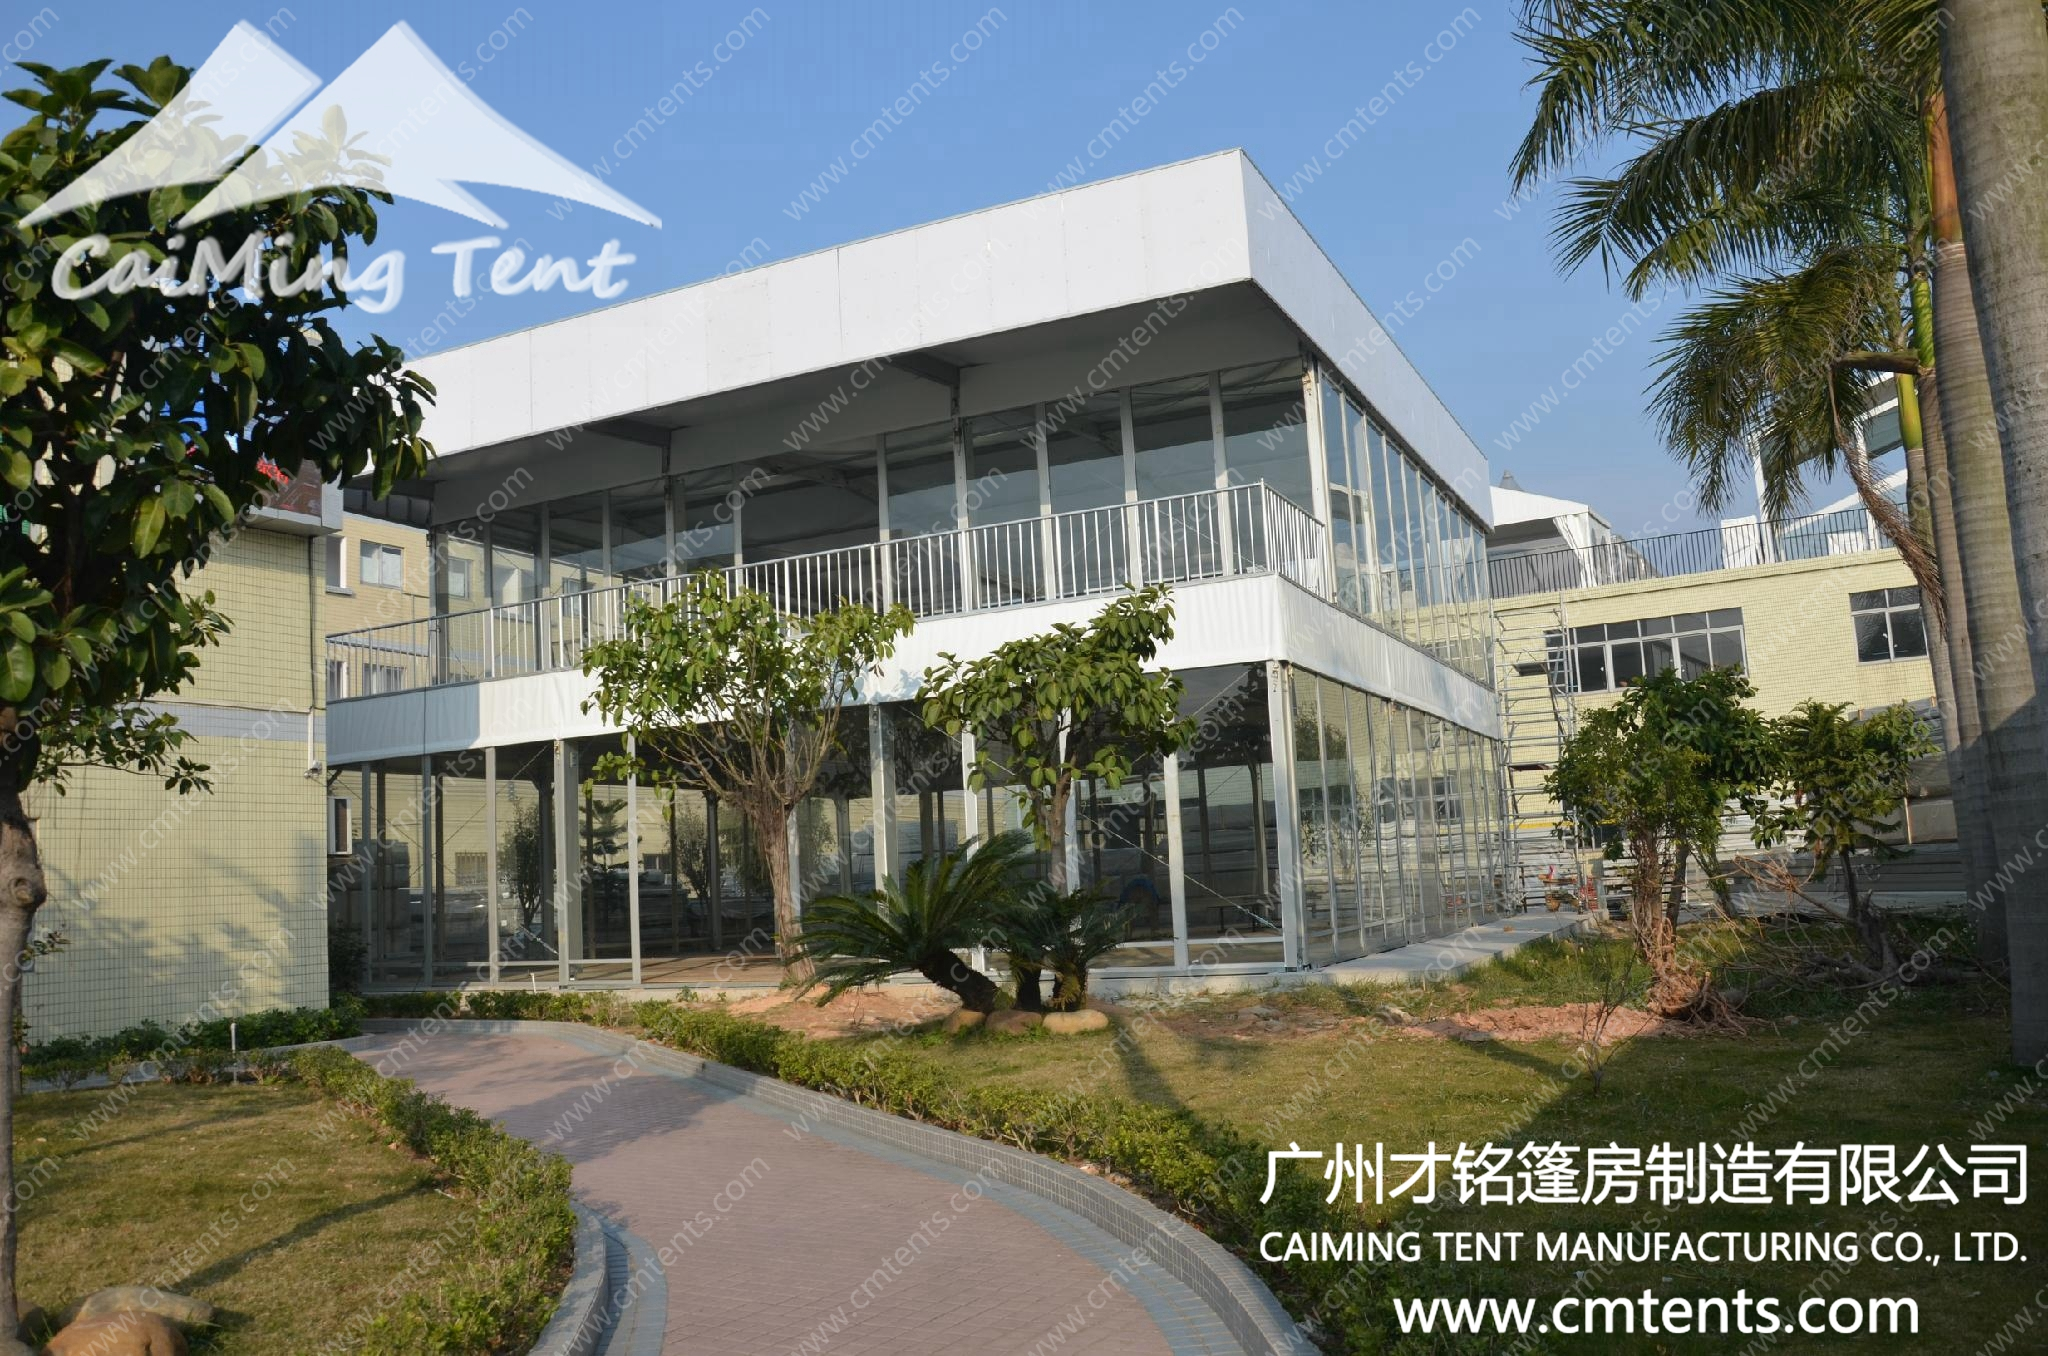 Cube Structure Tent,Cube Structure Tents,Cube Structure Tent for sale,Cube Structure,volume of acube structure,plumbing pipescube structureisolate,cube structurein ssas,structure cubefurniture,structuretube furniture,how to get a volume of acube,olapcube,datacube,cube structure database,cube structure in ssas,cube structured products,cube structures math,cube structure tab,cube structure in sap bi,cube structure country,cube structures based on five modules,cube structure based on nine modules,rubik's cube structure,cube structure,water cube structure,olap cube structure,volume of a cube structure,what is a cube structure,different views of a cube structure,isometric drawing of a cube structure,surface area of a cube structure,water cube beijing structure,water cube building structure,water cube beijing structure pdf,bpc cube structure,bi cube structure,structure cube en bois,cube crystal structure,ice cube crystal structure,cognos cube structure,water cube structure details,olap cube data structure,rubik's cube data structure,c# cube data structure,java cube data structure,ssas cube data structure,diamond cubic structure,structure de cube sol lewitt,cube d eau structure,structure tube edmonton,essbase cube structure,cube structure furniture,cube file structure,olap cube file structure,georgia cube fish structure,teradek cube frame structure,gaussian cube file structure,famous cube structure,curved reveal and cube structure for after effects,rubik's cube group structure,glass cube structure,structure gonflable cube,cube shaped structure in mecca,rubik's cube internal structure,ice cube structure,inflatable cube structure,led cube structure,ice cube molecular structure,mtg cube structure,multidimensional cube structure,magic cube structure,structure cube ottawa,structure of cube files,cube play structure,cube process structure,water cube structure pdf,ssas cube process structure,holiday cube prize structure,little tikes cube play structure,pyrite cube structure,mtgo 